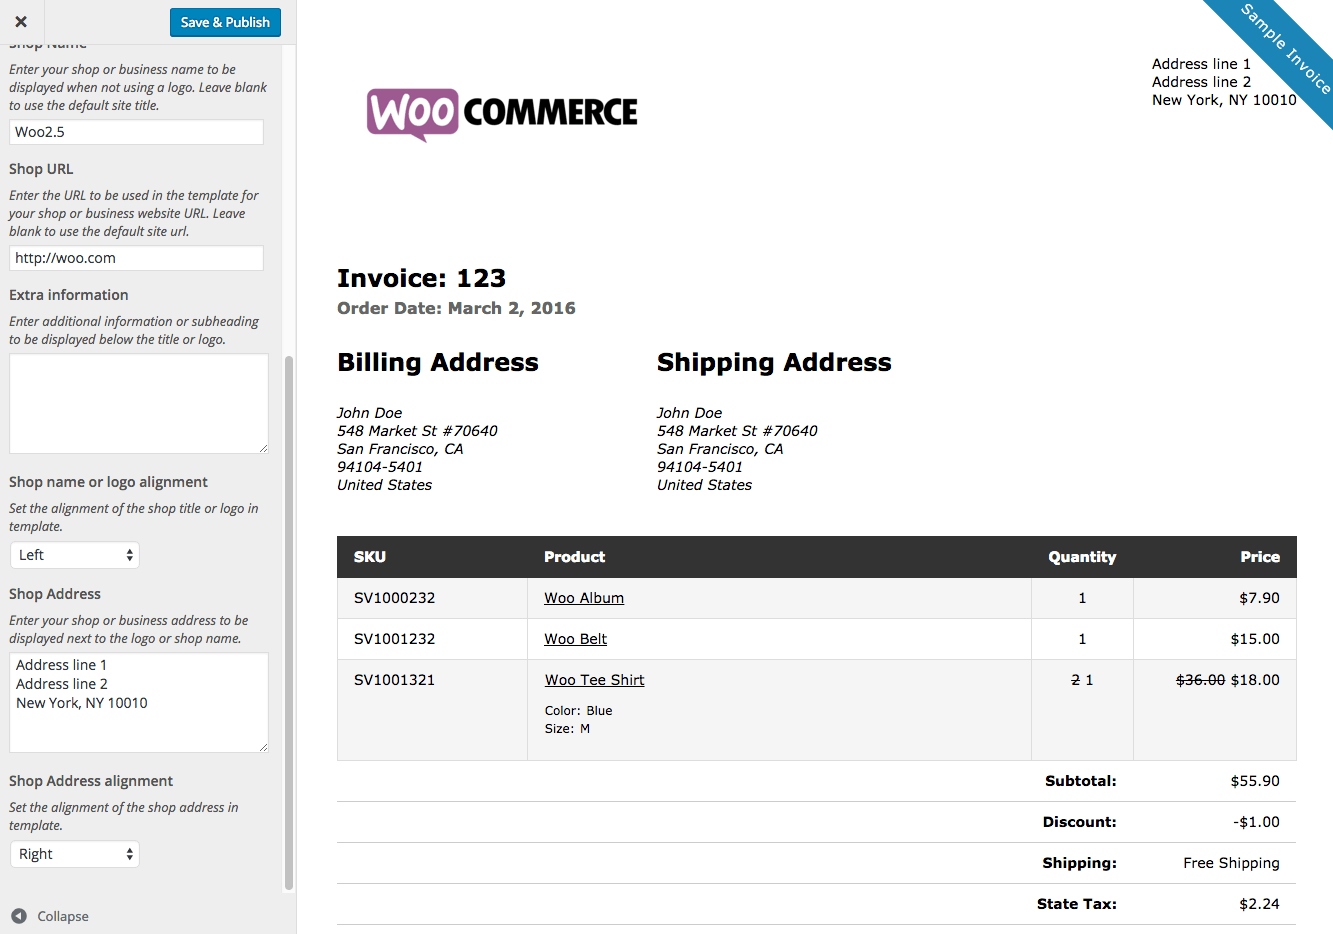 Weverducreus  Splendid Print Invoices Amp Packing Lists  Woocommerce With Interesting Woocommerce Print Invoices  Packing Lists Customizer With Charming Rbs Invoice Finance Also Blank Invoice Template Printable In Addition Telecom Invoice Audit And Invoice Web As Well As Free Invoice Excel Template Additionally Sales Invoice Template Uk From Woocommercecom With Weverducreus  Interesting Print Invoices Amp Packing Lists  Woocommerce With Charming Woocommerce Print Invoices  Packing Lists Customizer And Splendid Rbs Invoice Finance Also Blank Invoice Template Printable In Addition Telecom Invoice Audit From Woocommercecom